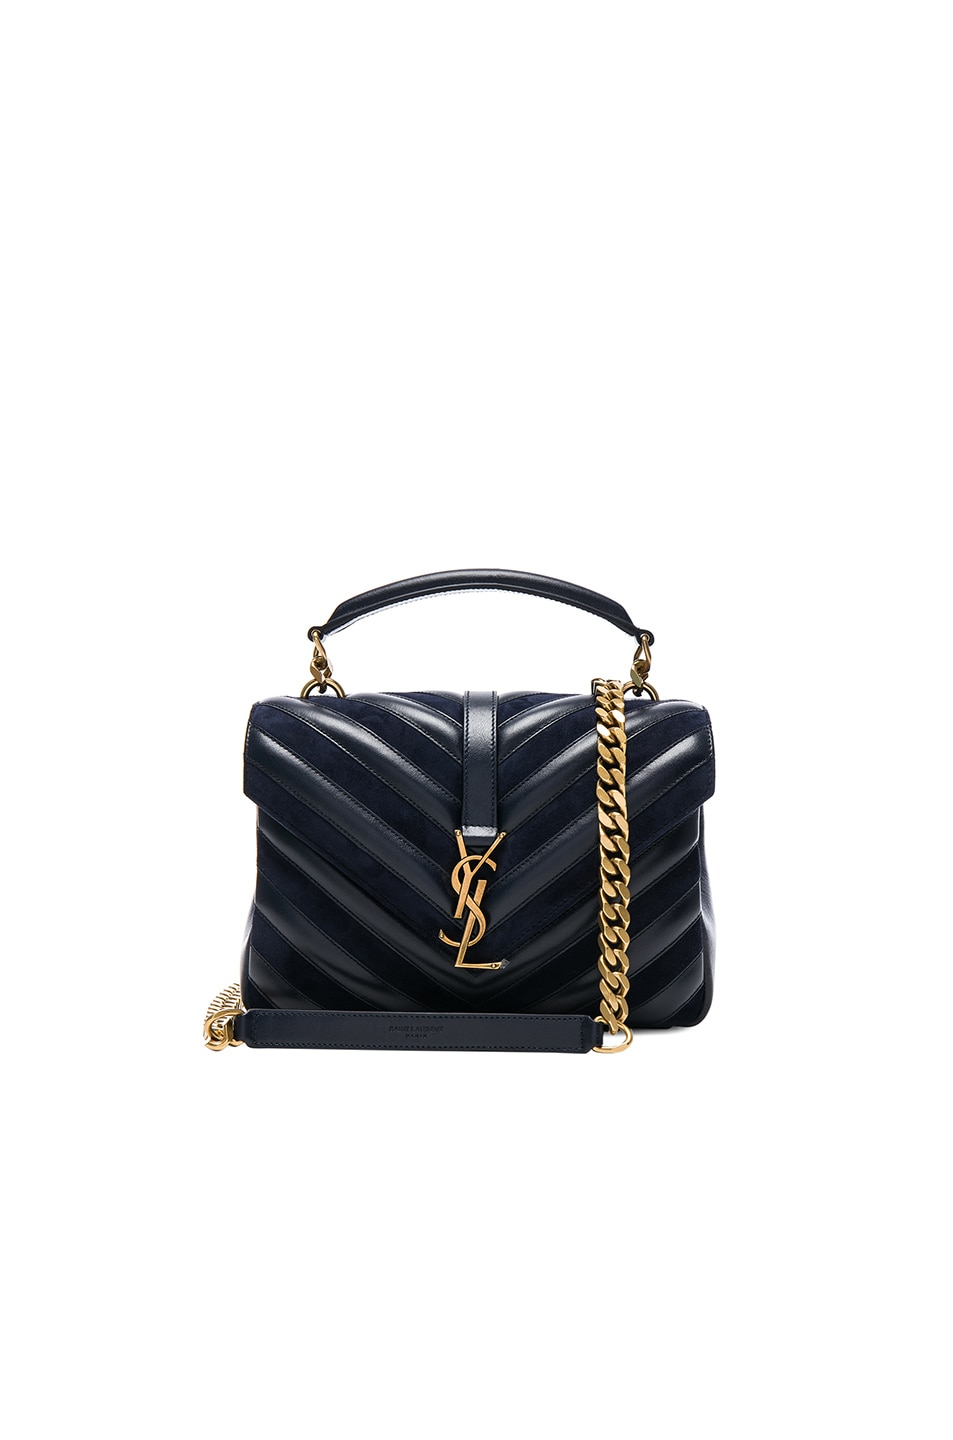 20a4a739a7985 Image 1 of Saint Laurent Medium Leather   Suede Patchwork Monogramme  College Bag in Deep Marine